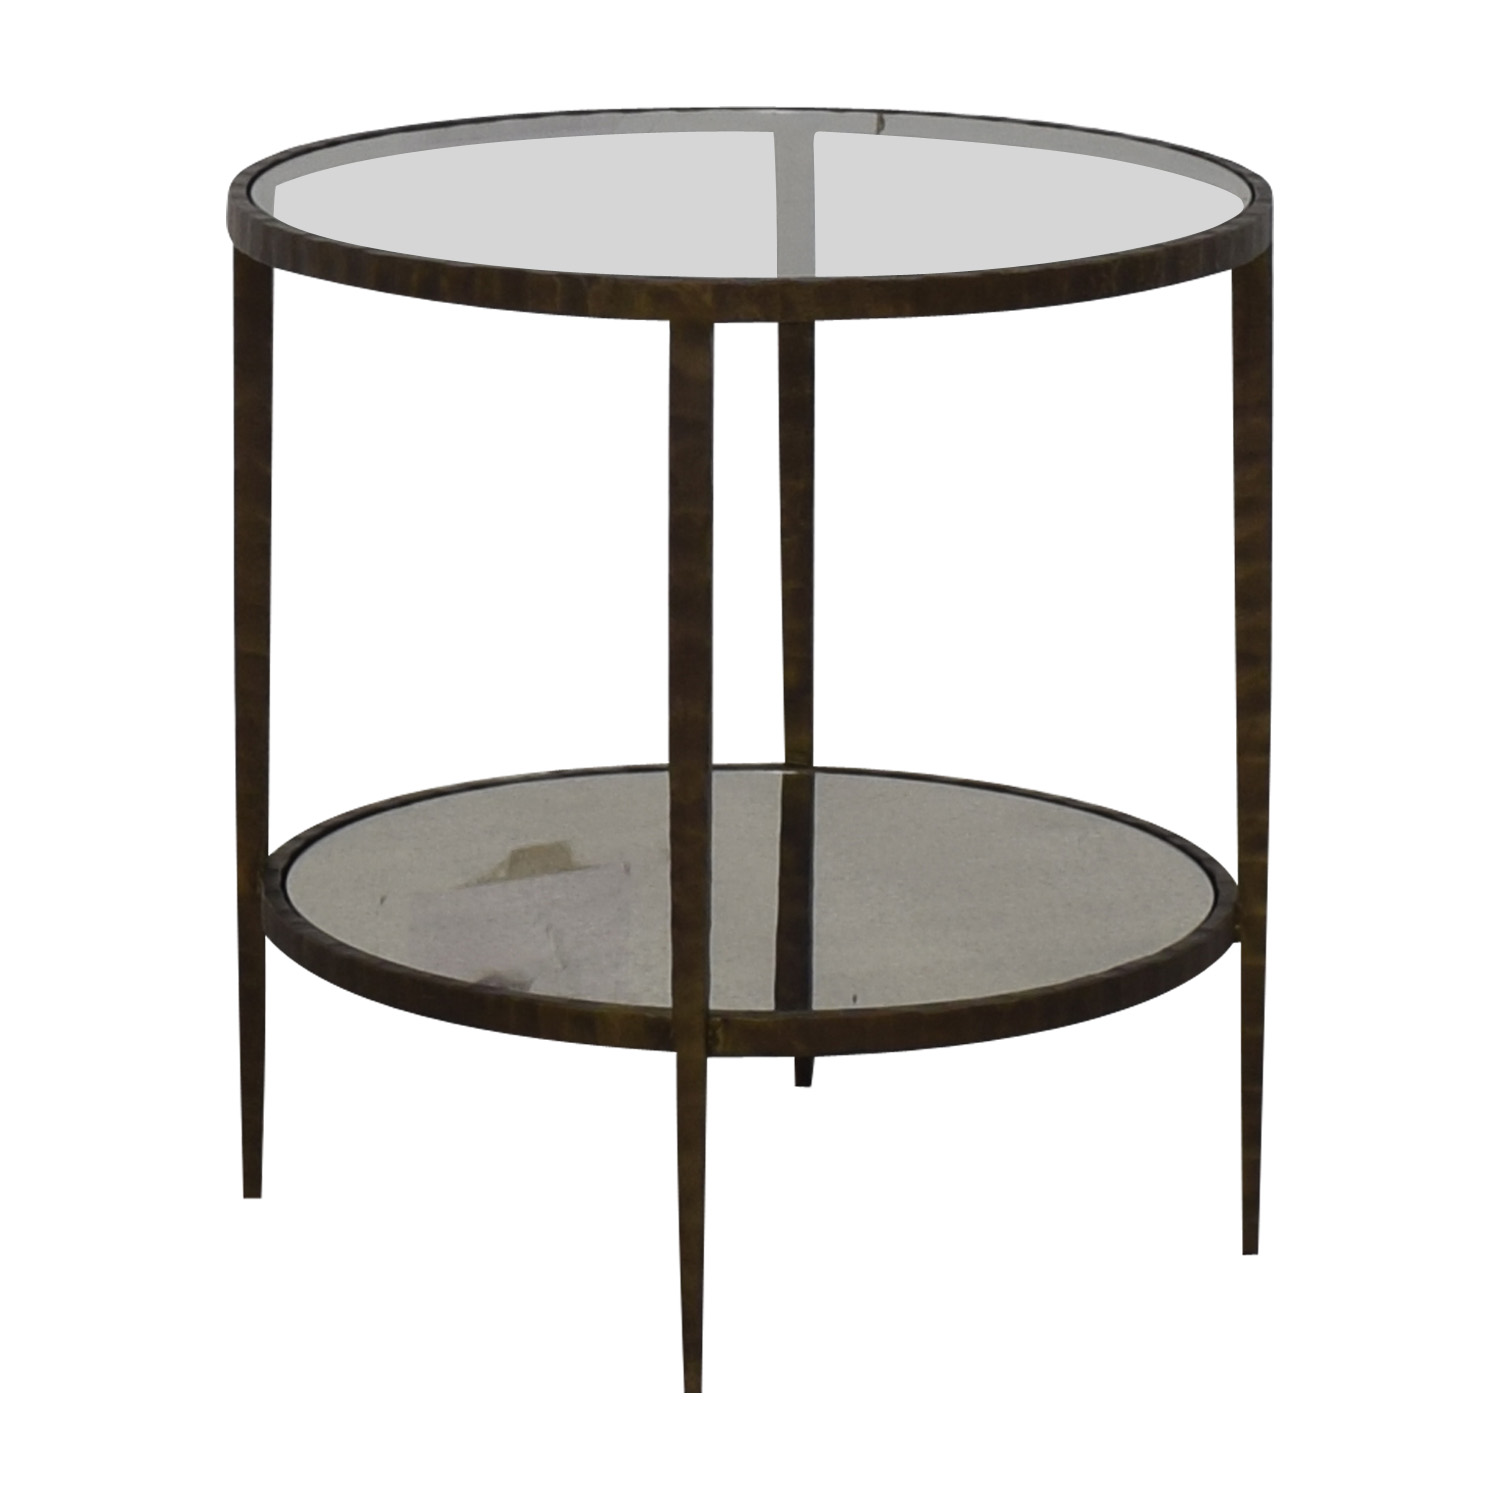 Crate & Barrel Clairemont Round Side Table / Tables